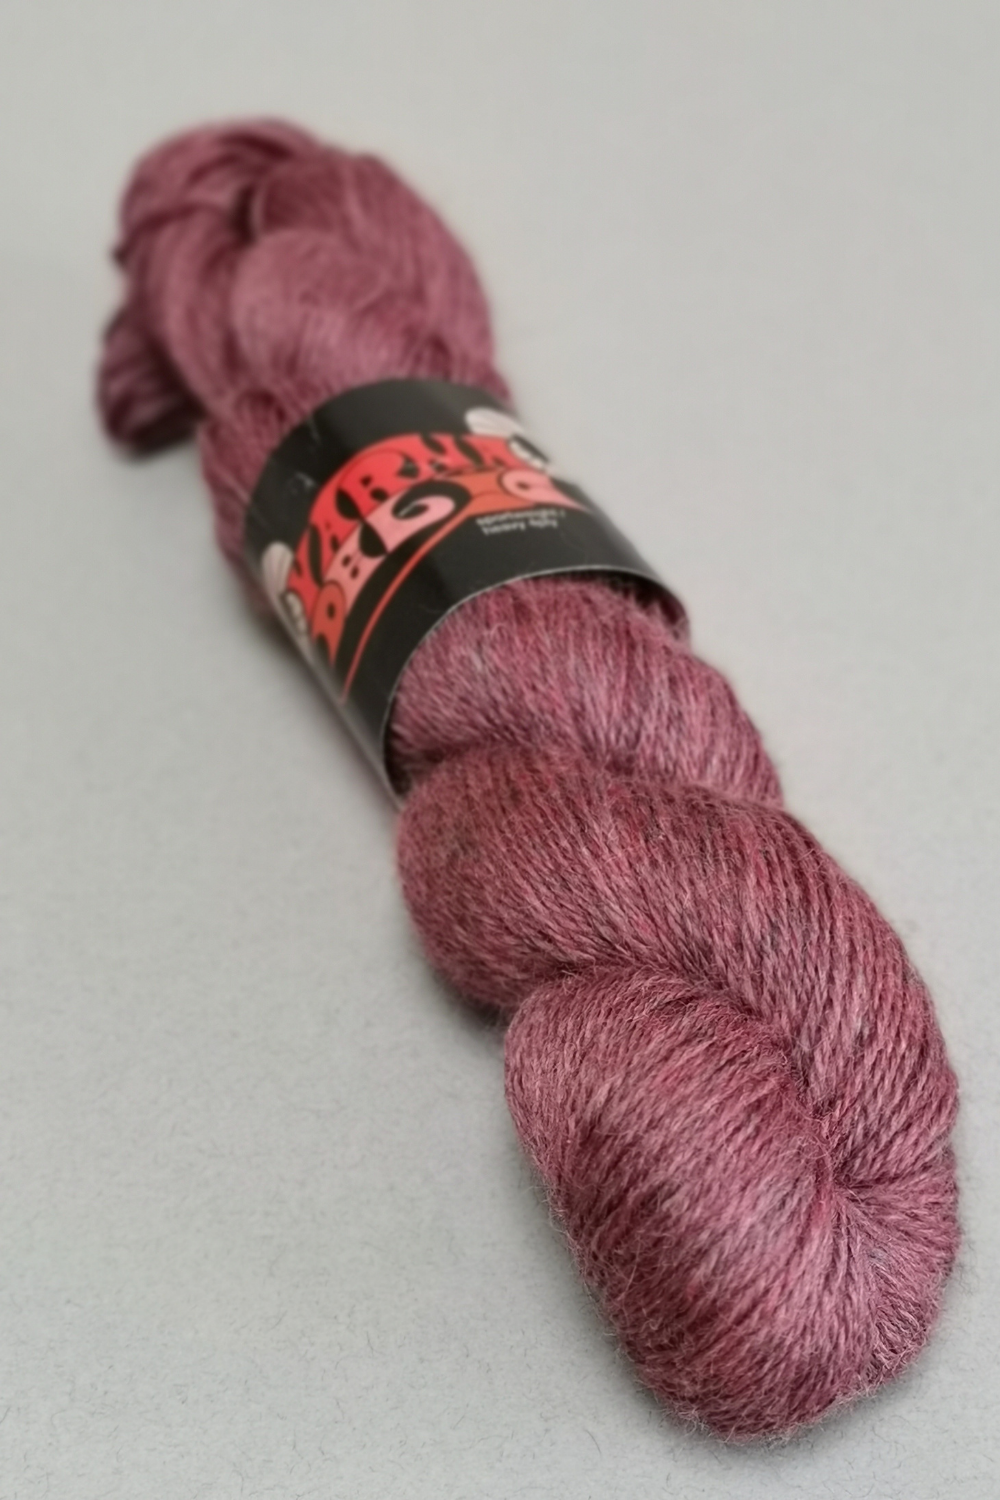 Skein of shiny tweed wool in adeep rose pink with hints of blue.  Wool is Yarnadelic from John Arbon Textiles